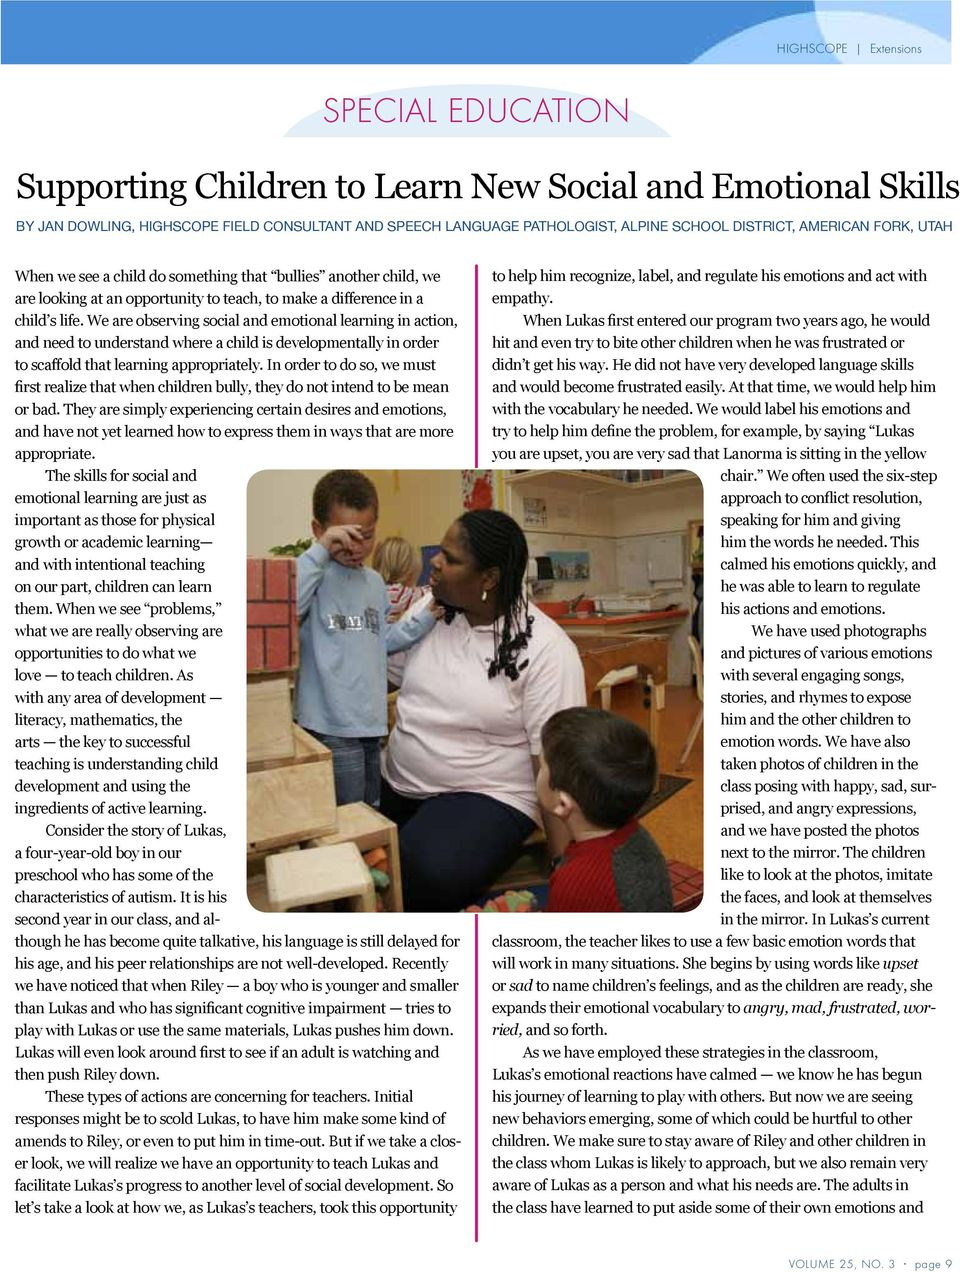 We are observing social and emotional learning in action, and need to understand where a child is developmentally in order to scaffold that learning appropriately.